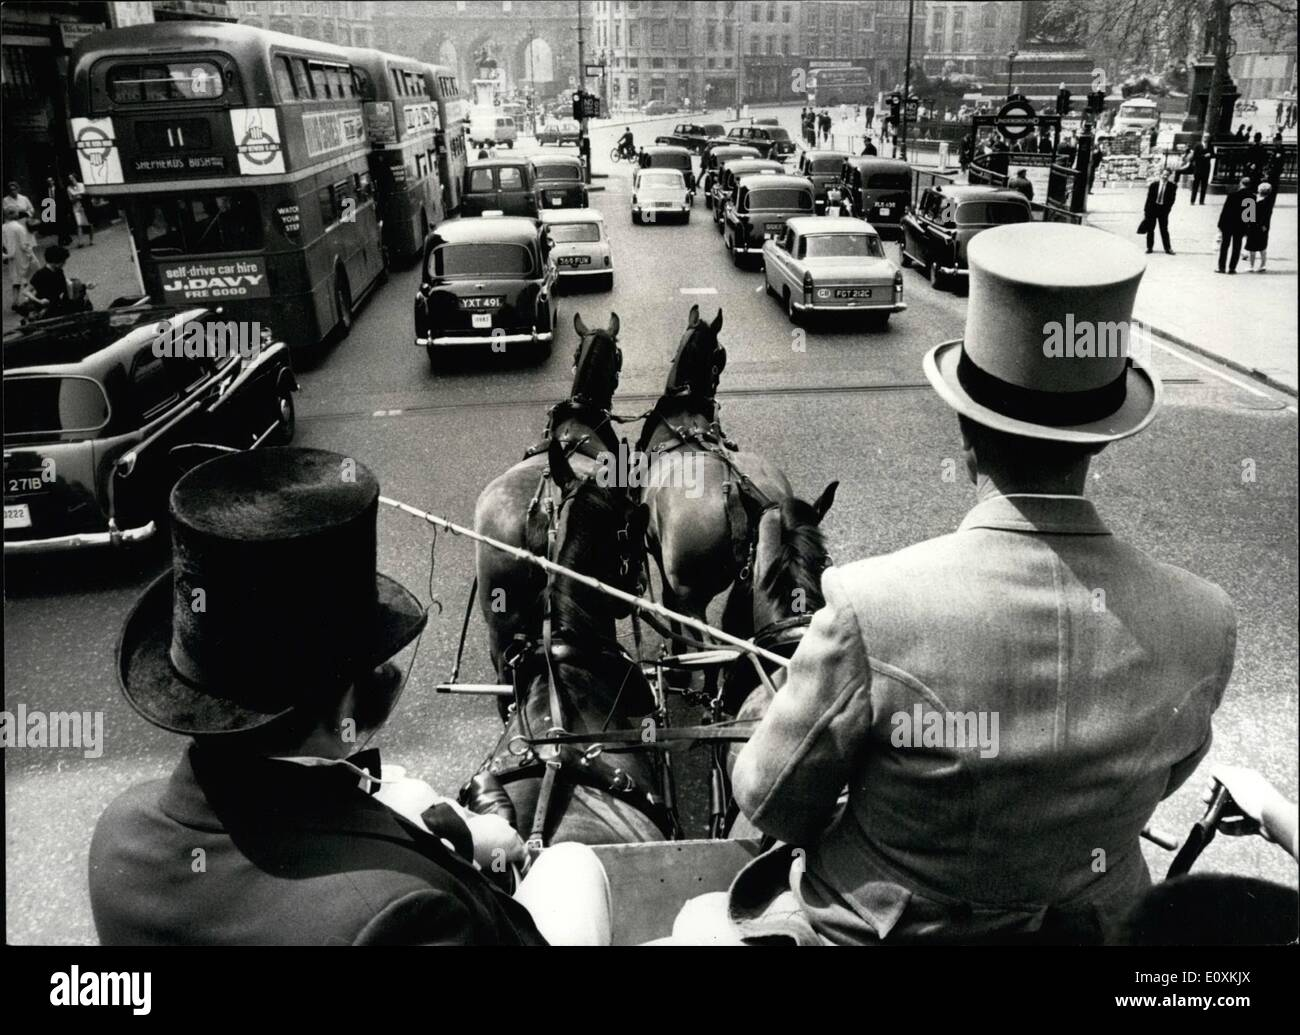 May 05, 1967 - Illustrated London News Celebrates 125th Anniversary. The world's oldest illustrated weekly news paper the Illustrated London News, celebrates its 125th Anniversary today. And to celebrate they recreated the first deliveries of the paper along Fleet Street and Central London, as they were made by horse drawn stage coach in 1842. The original printing office stood in Crane Court. The publishing office was at 320 Strand, the site of Bush House. Afterwards, the coach, carrying Illustrated London News staff in period costume, toured central London - Stock Image